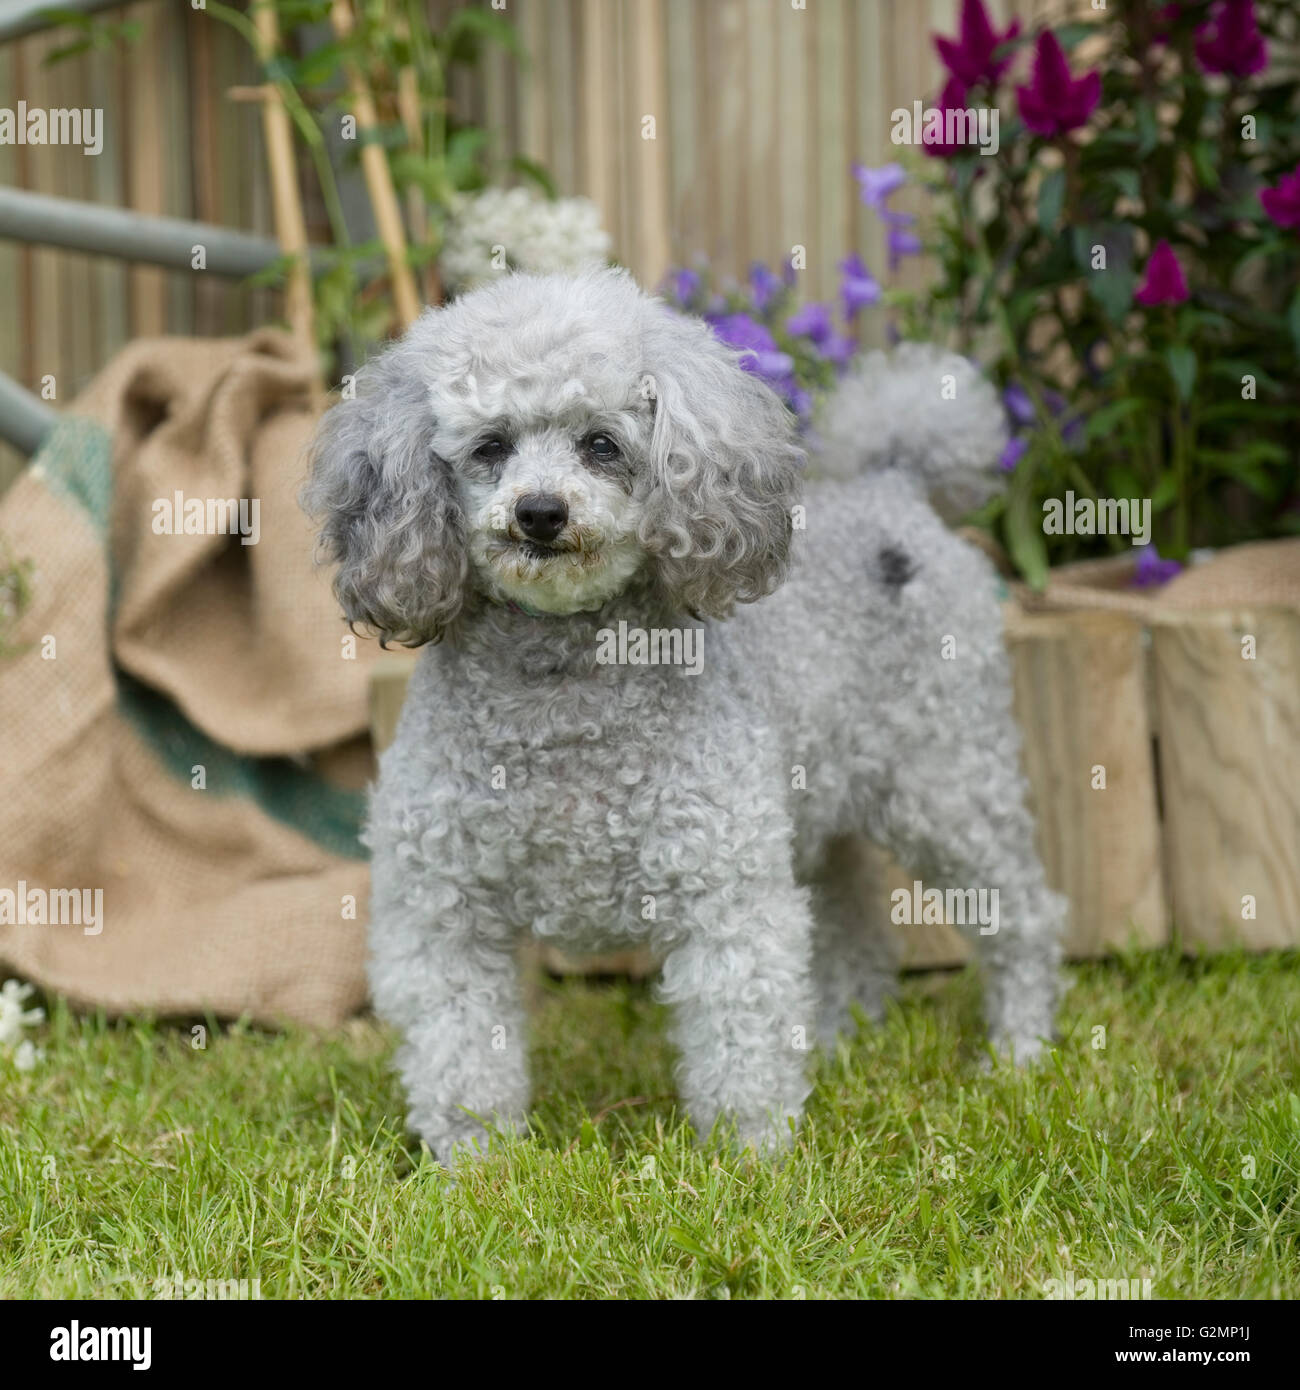 poodle - Stock Image